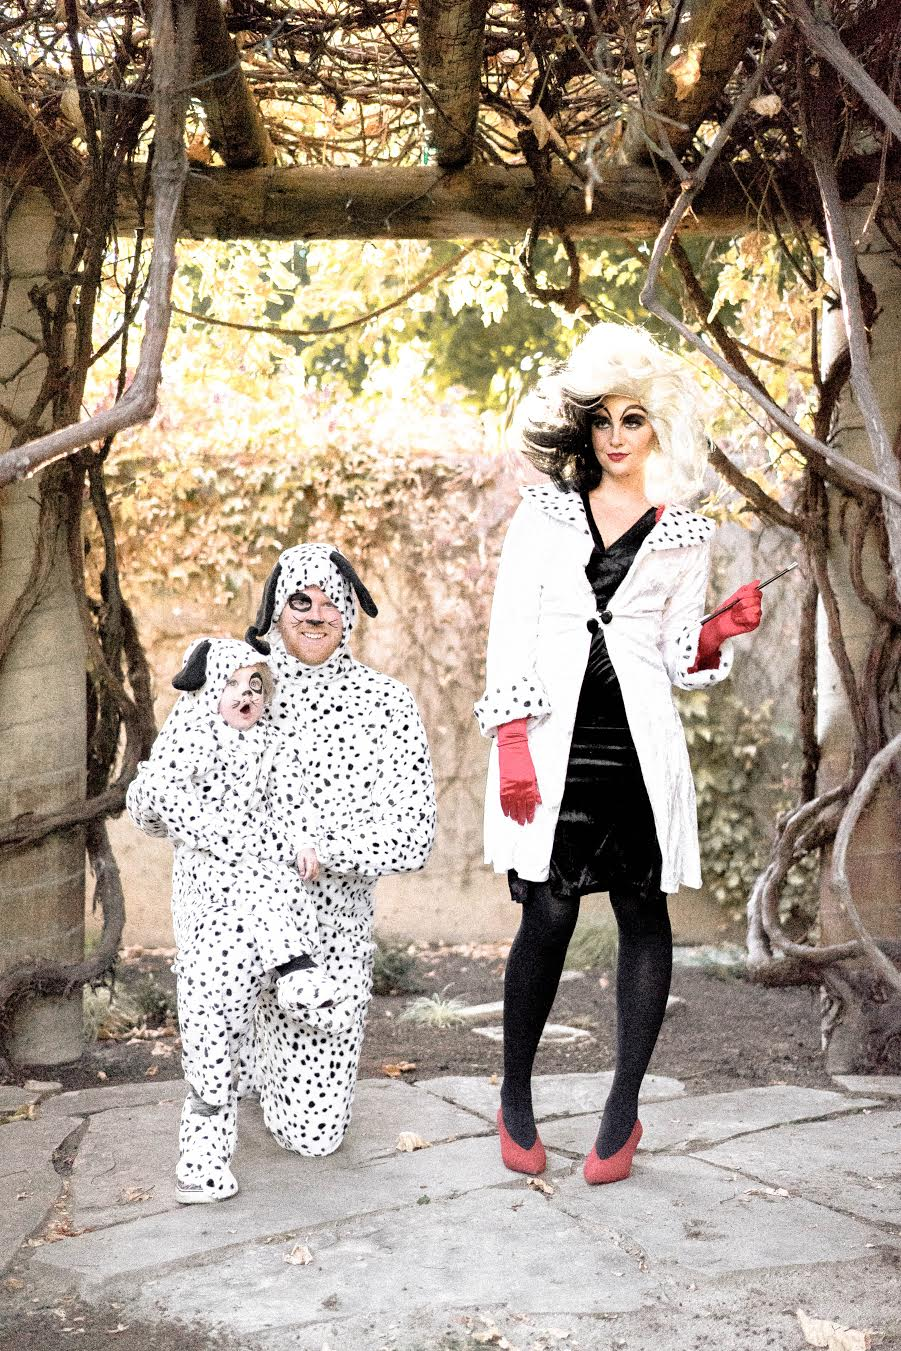 Halloween Costumes, Family Costumes, Dalmatian costumes